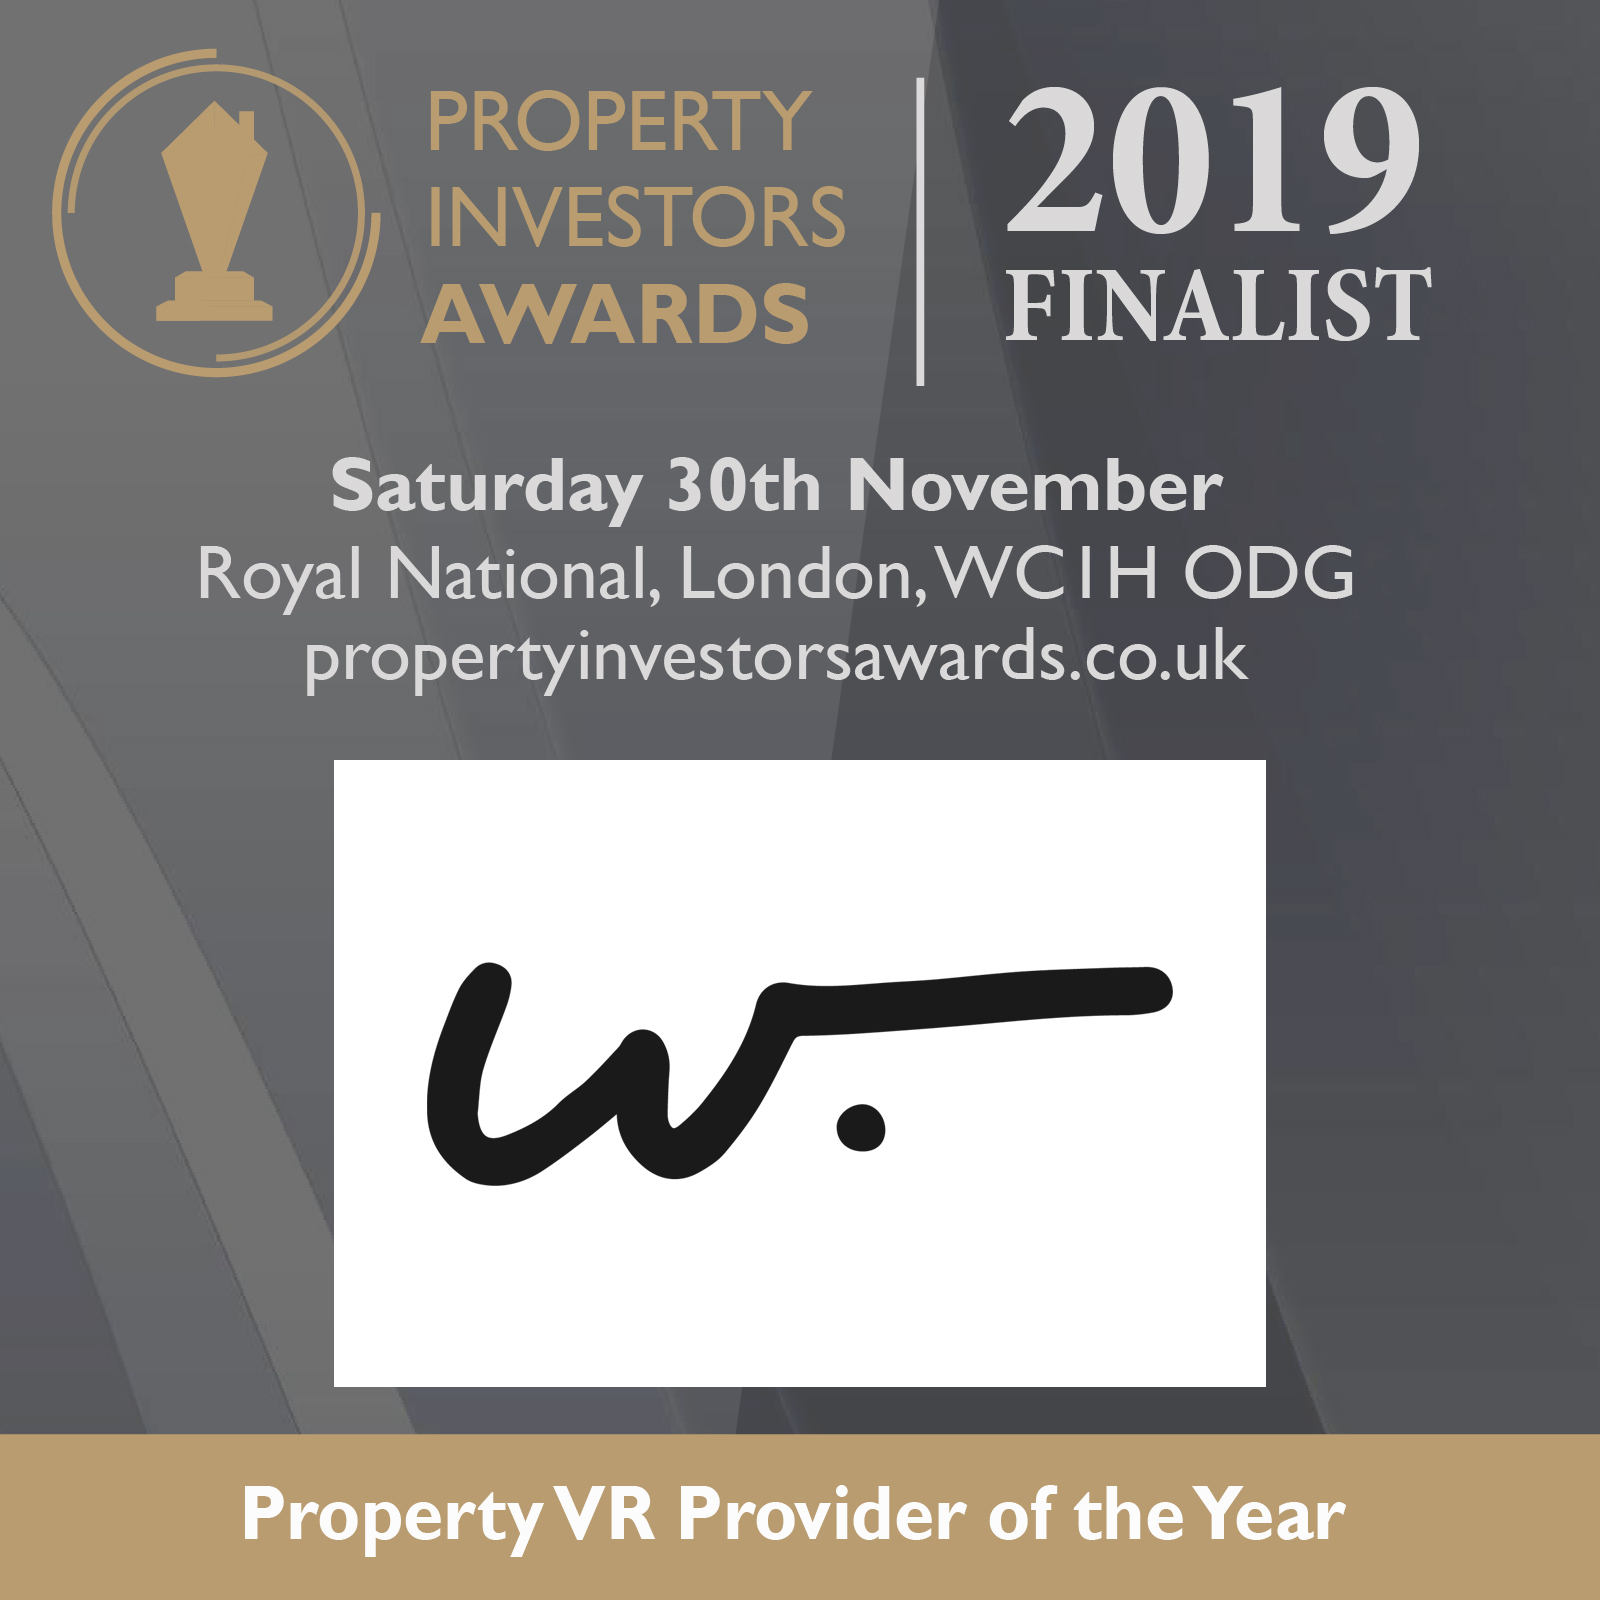 Property Investors Awards Finalists Badge, Property VR Provider 2019